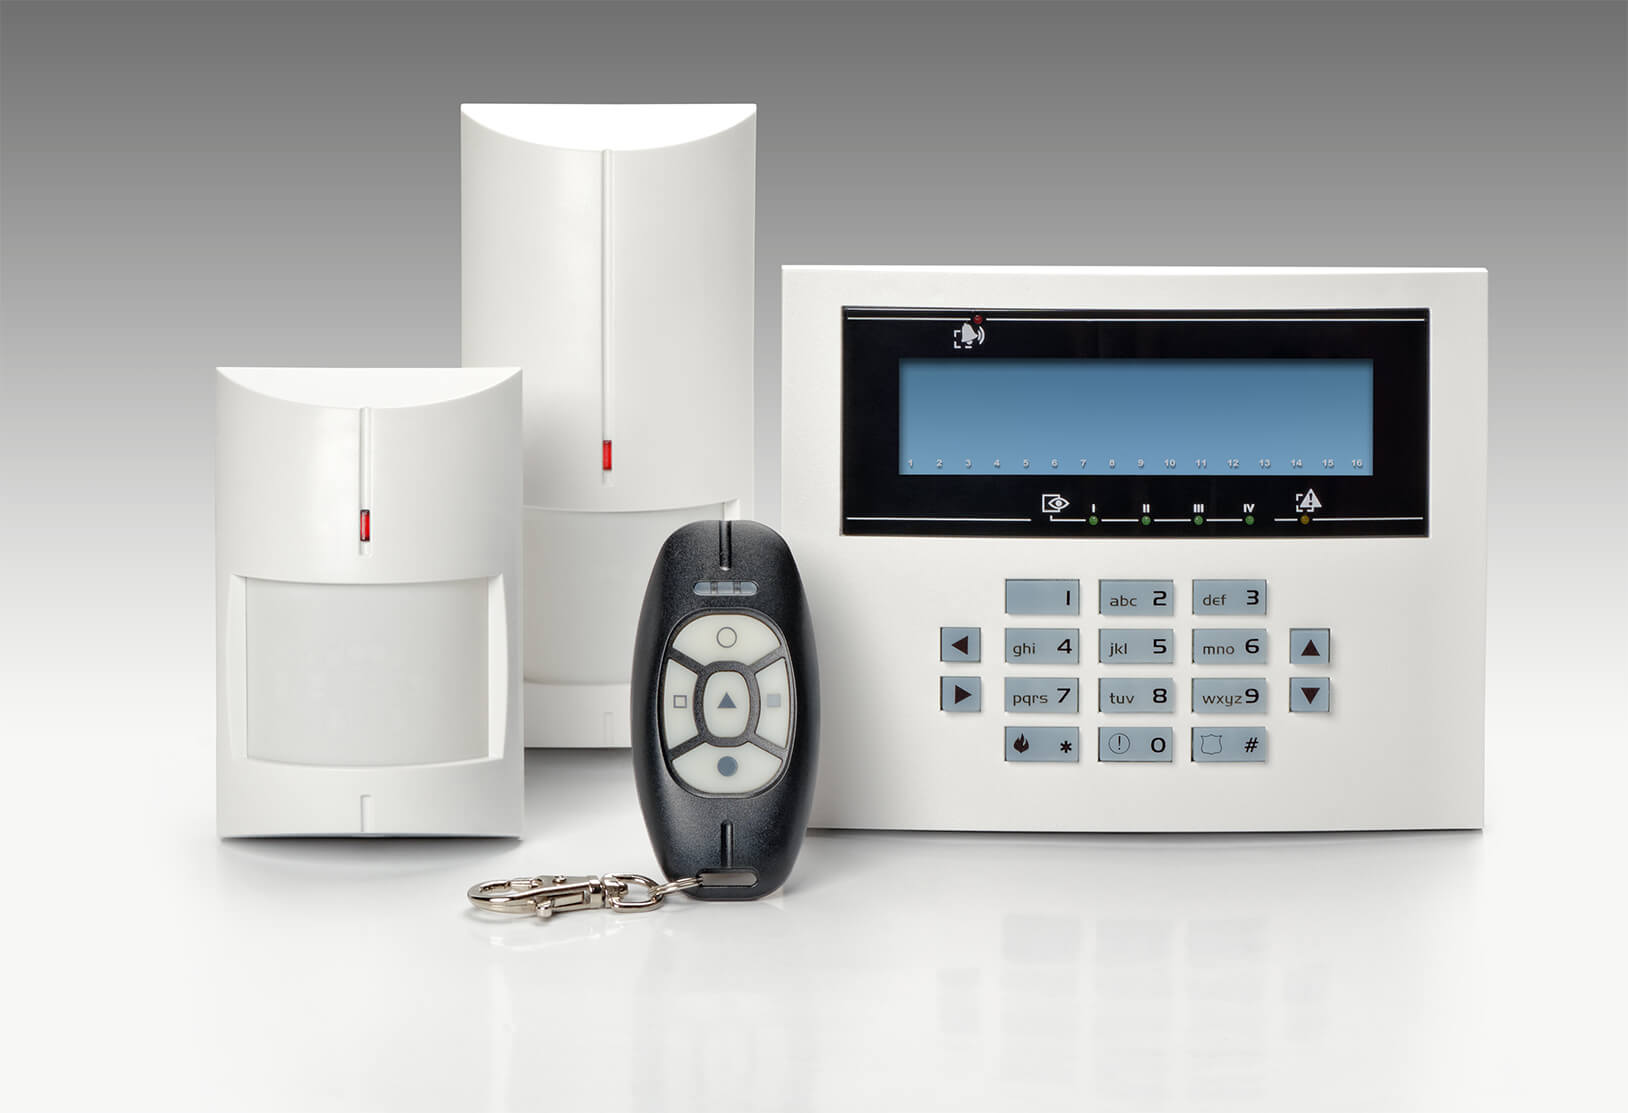 Business & Residential NACOSS Approved Burglar Alarms In Stoke Newington N16 - Local Stoke Newington N16 security company.Call 02078872244 - Dedicated to Safety & Security. Companies, shops and homes ..